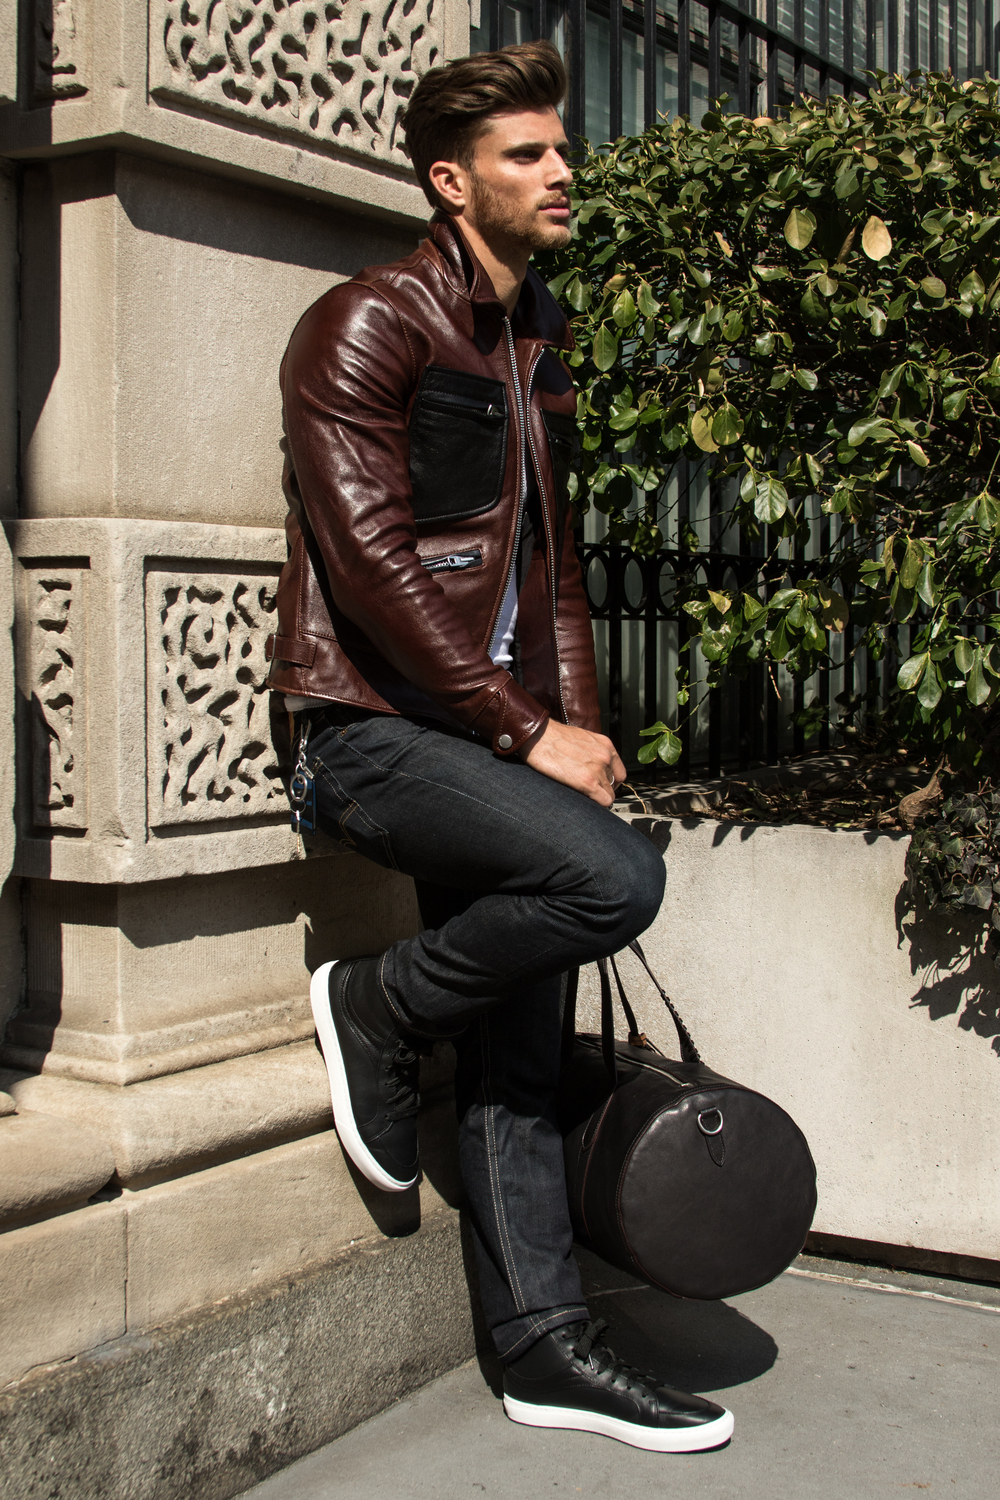 Leather Roadster Jacket | c2O2 Sneaker | Rip And Repair Large Gym Bag | Bottle Opener Bag Charm